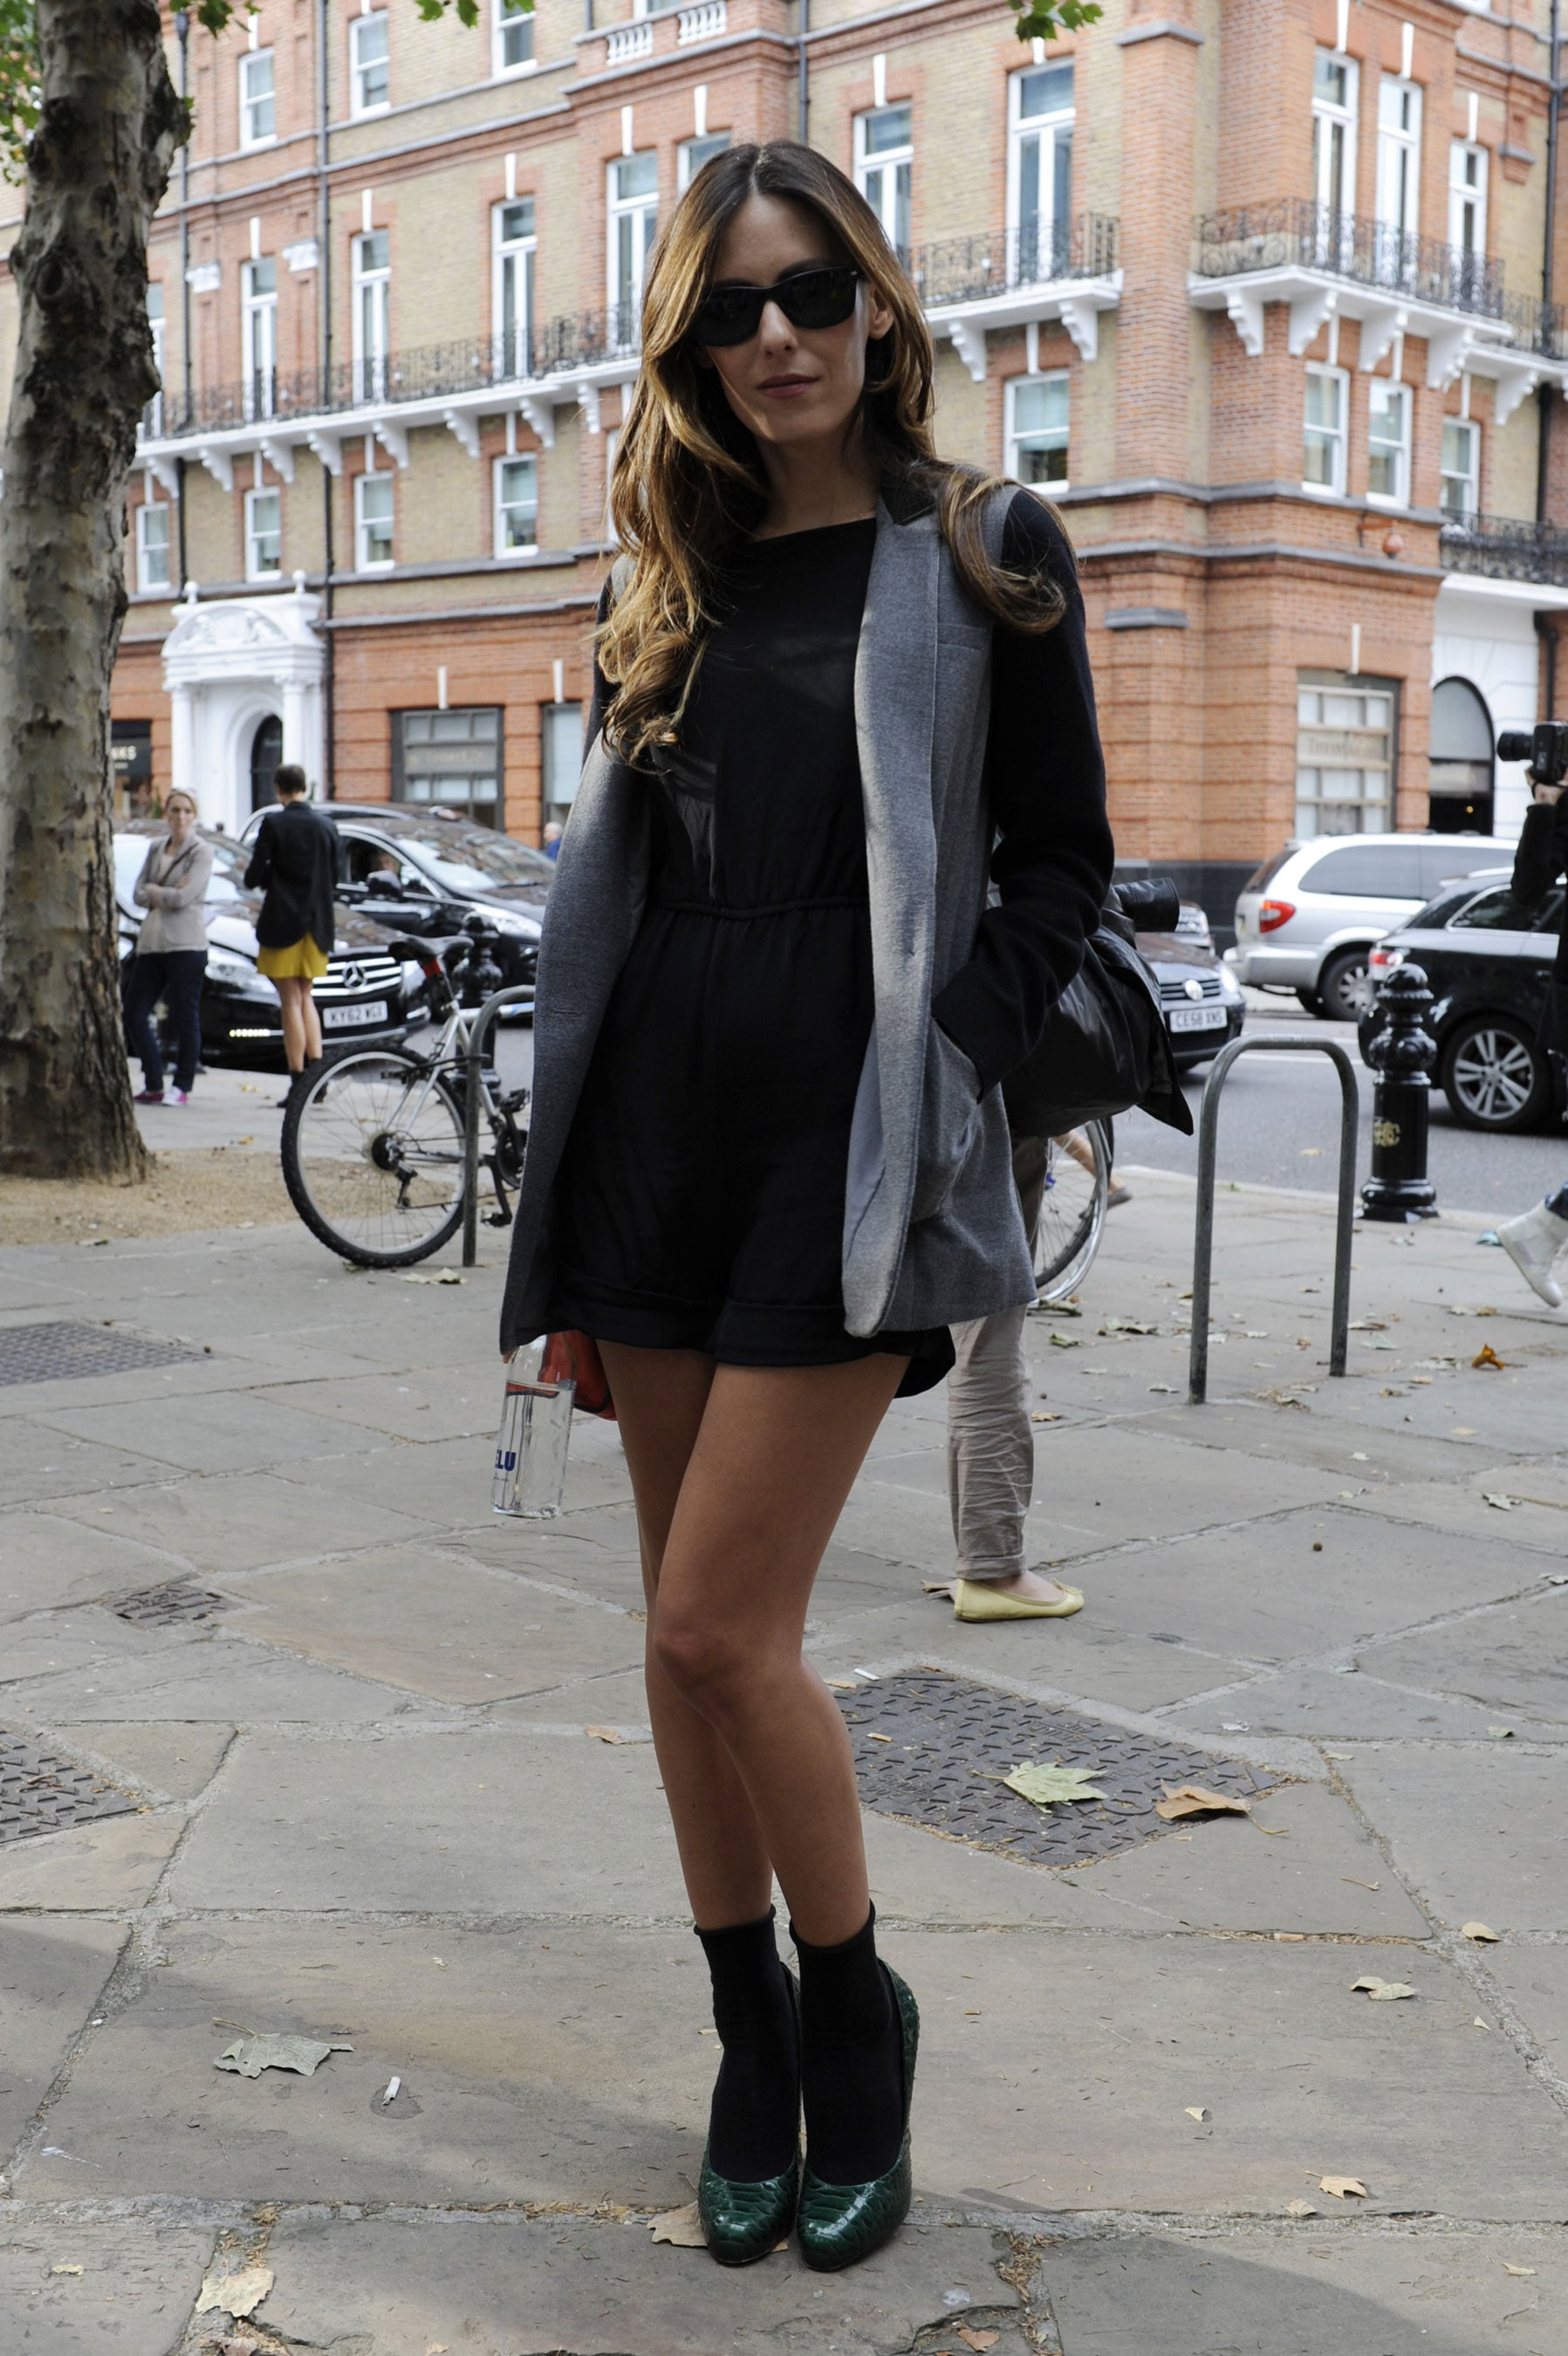 A sexier mini hemline got a sweet counterpart with socks and pumps.